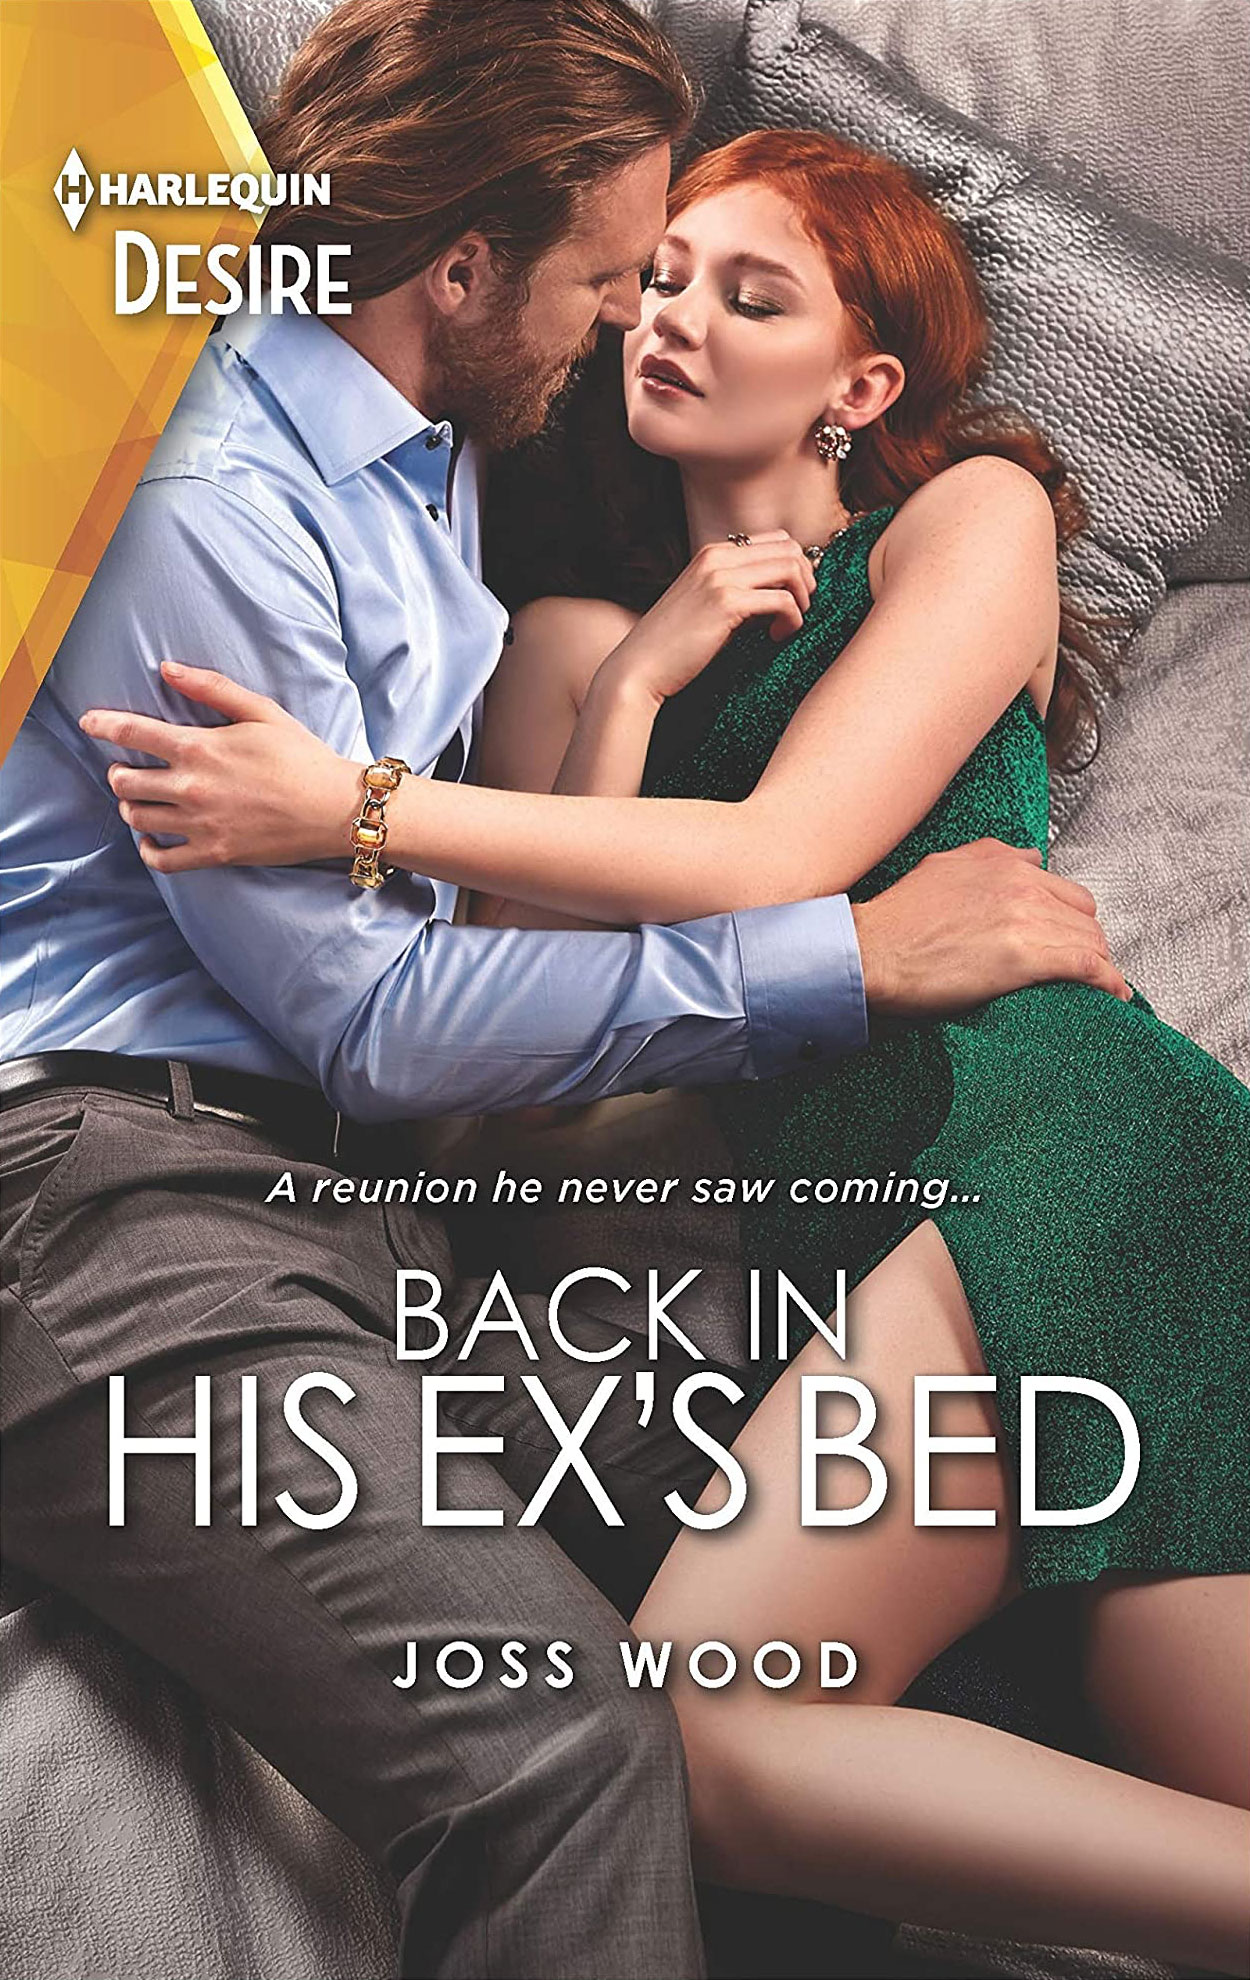 Back in His Ex's Bed by Joss Wood